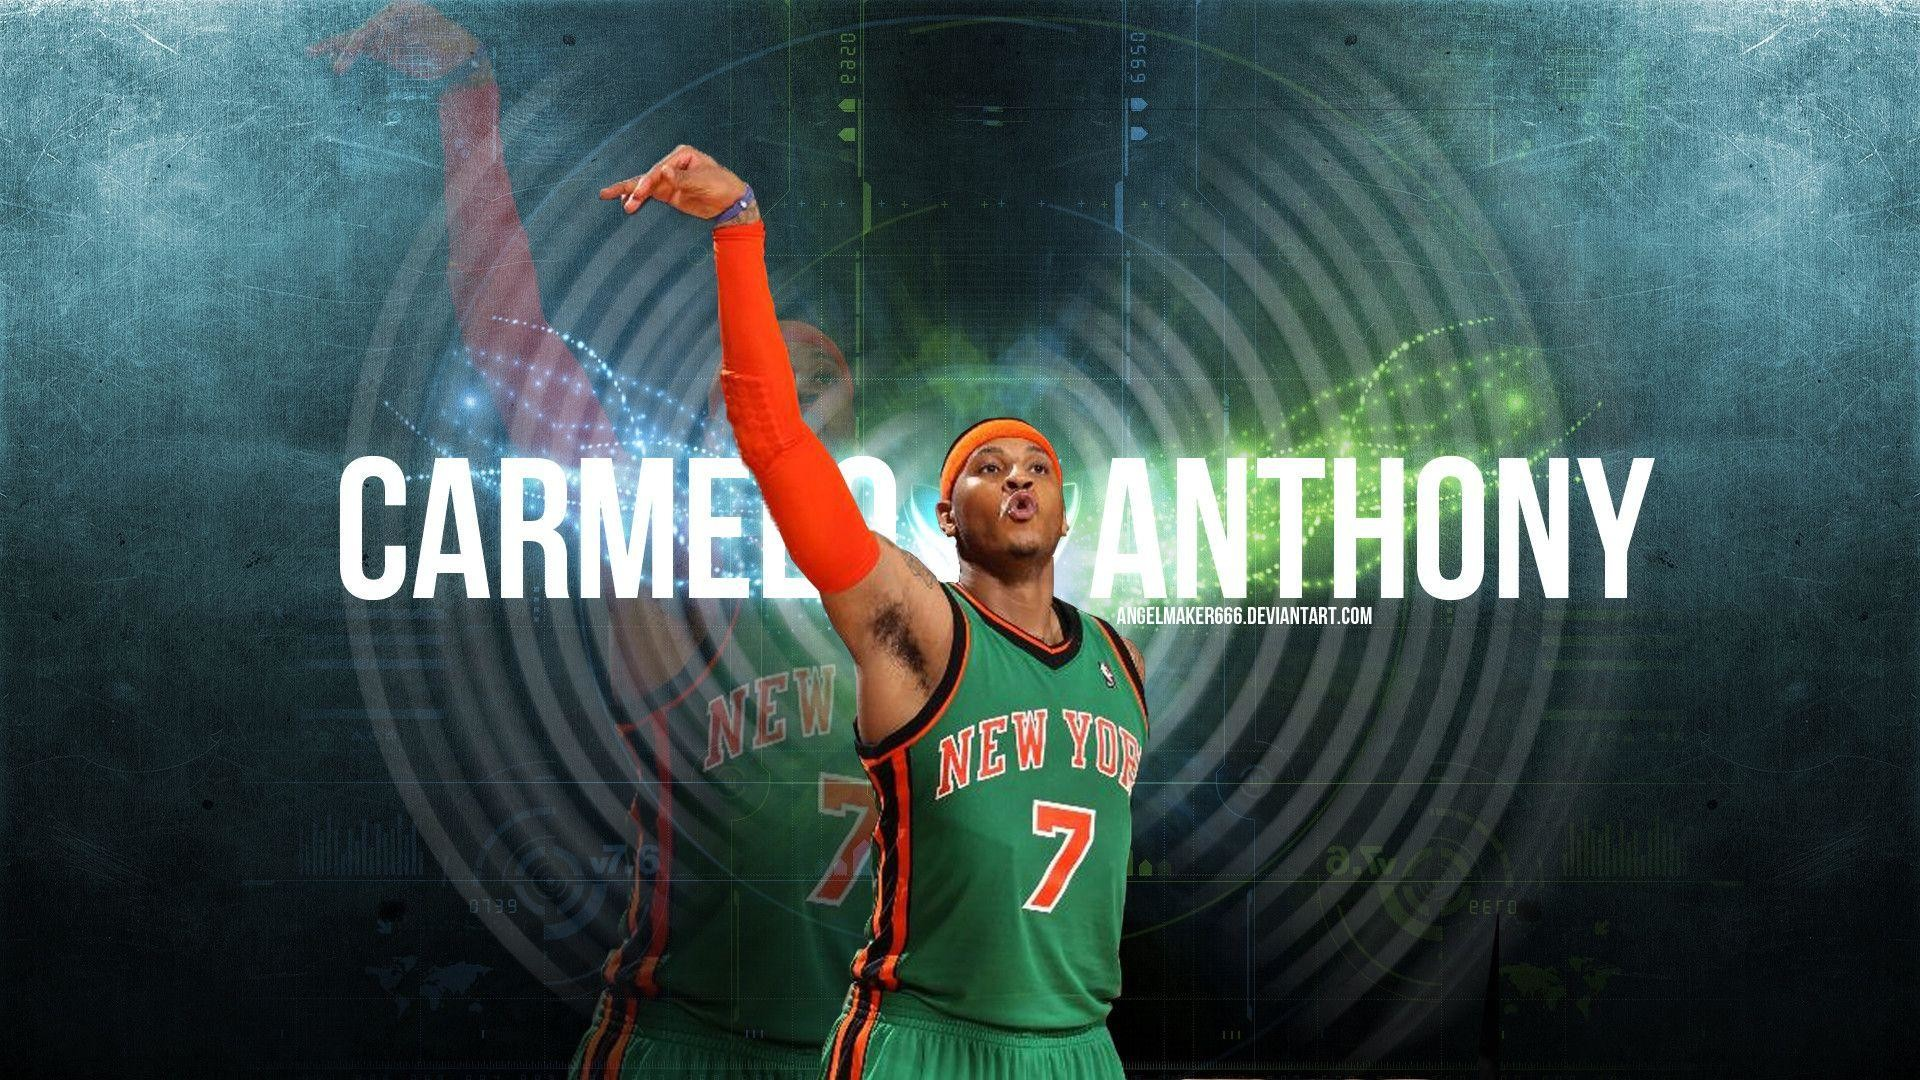 1920x1080 Carmelo Anthony Knicks Wallpapers - Wallpaper Cave Carmelo Anthony Logo  Wallpaper